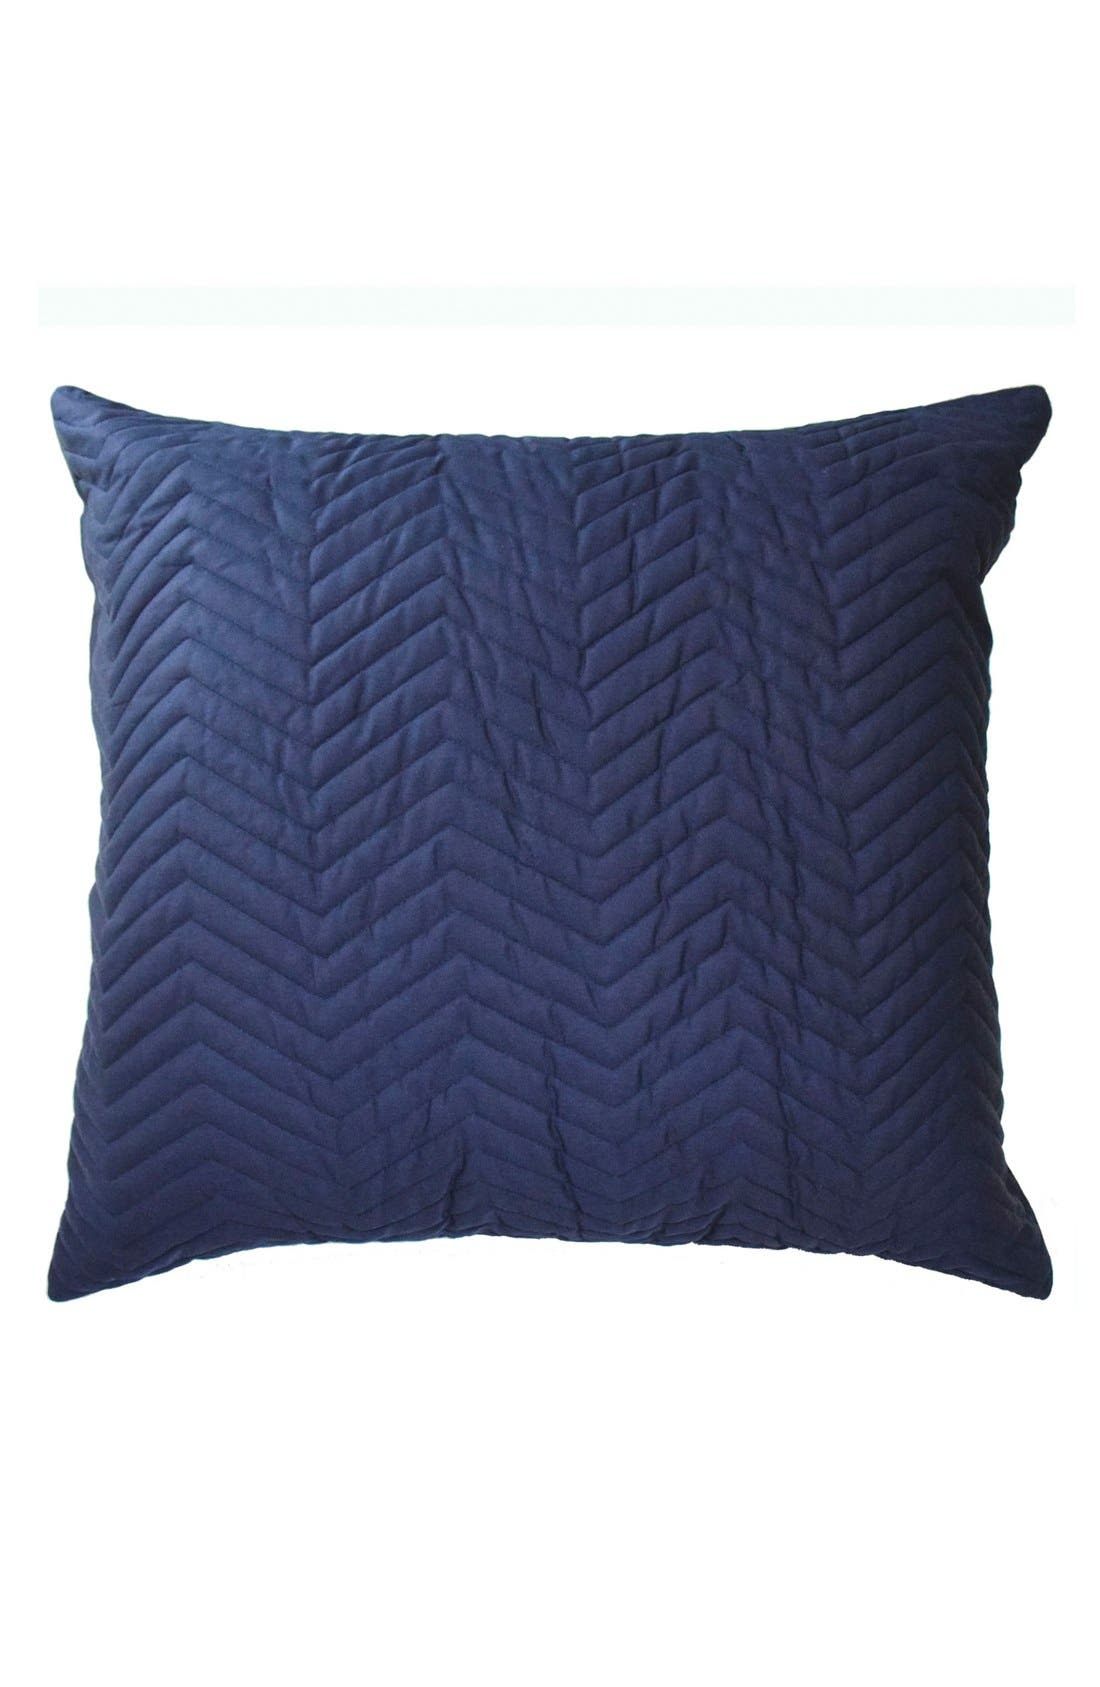 Alternate Image 1 Selected - Blissliving Home 'Francisco' Euro Sham